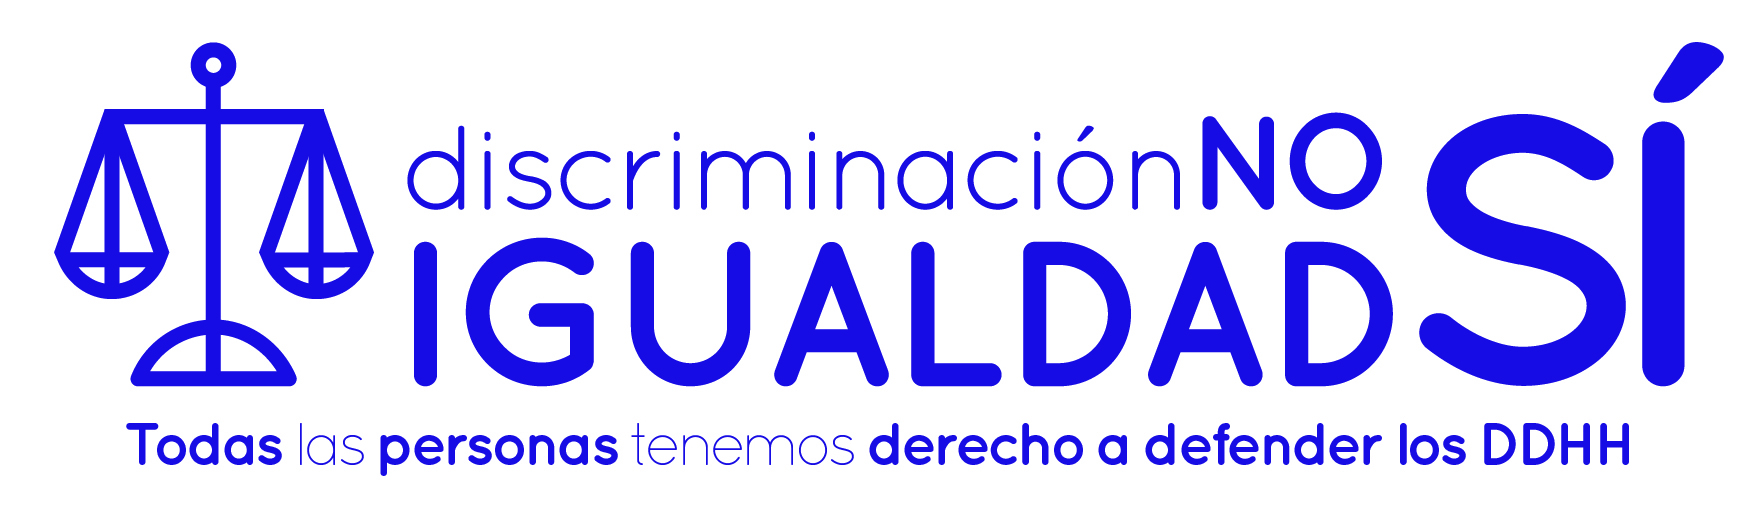 LogoIgualdad_Defensor